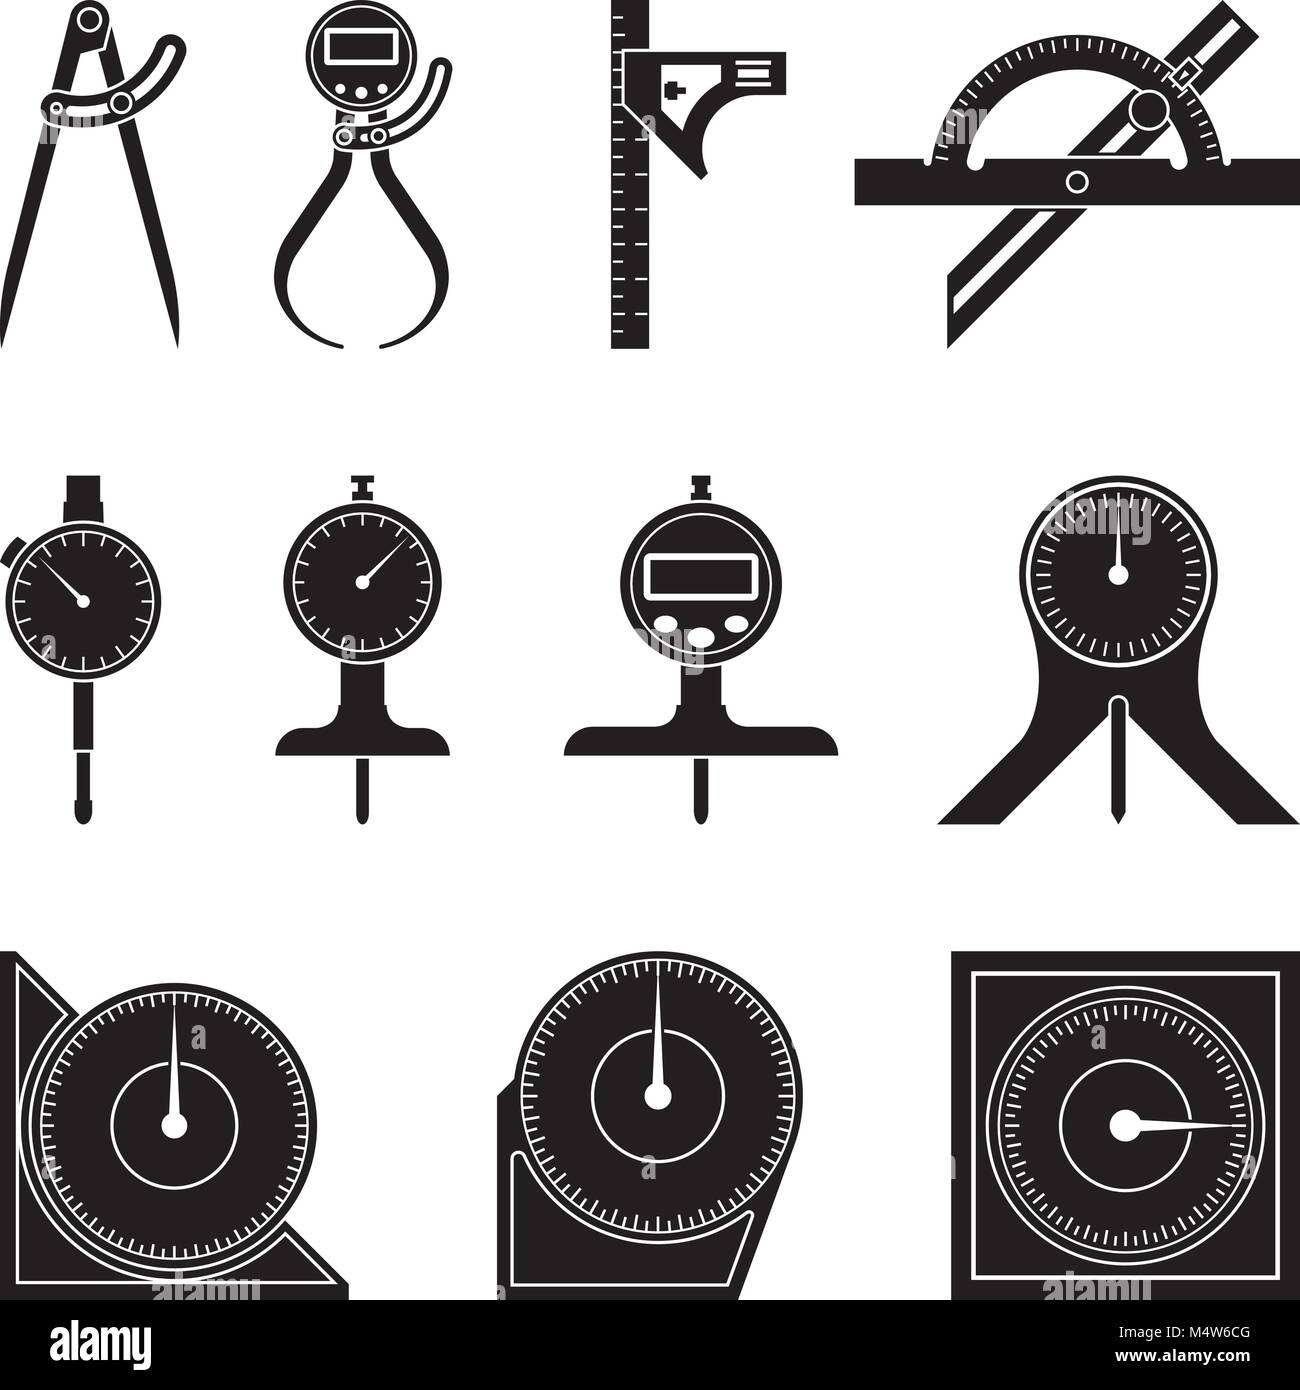 Set Of Various Types Of Measuring Tools Flat Vector Stock Vector